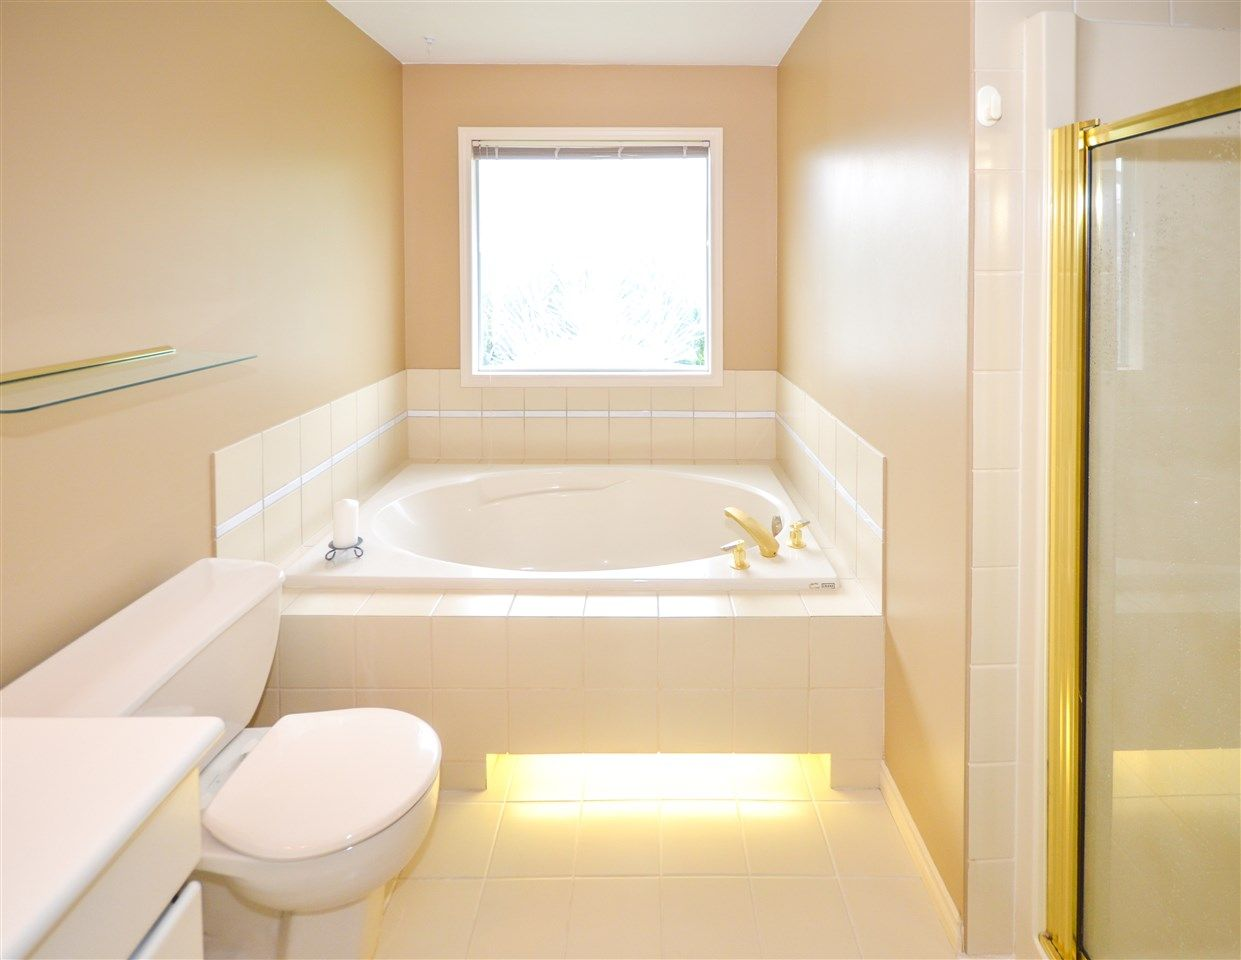 Soaker tub & separate shower.